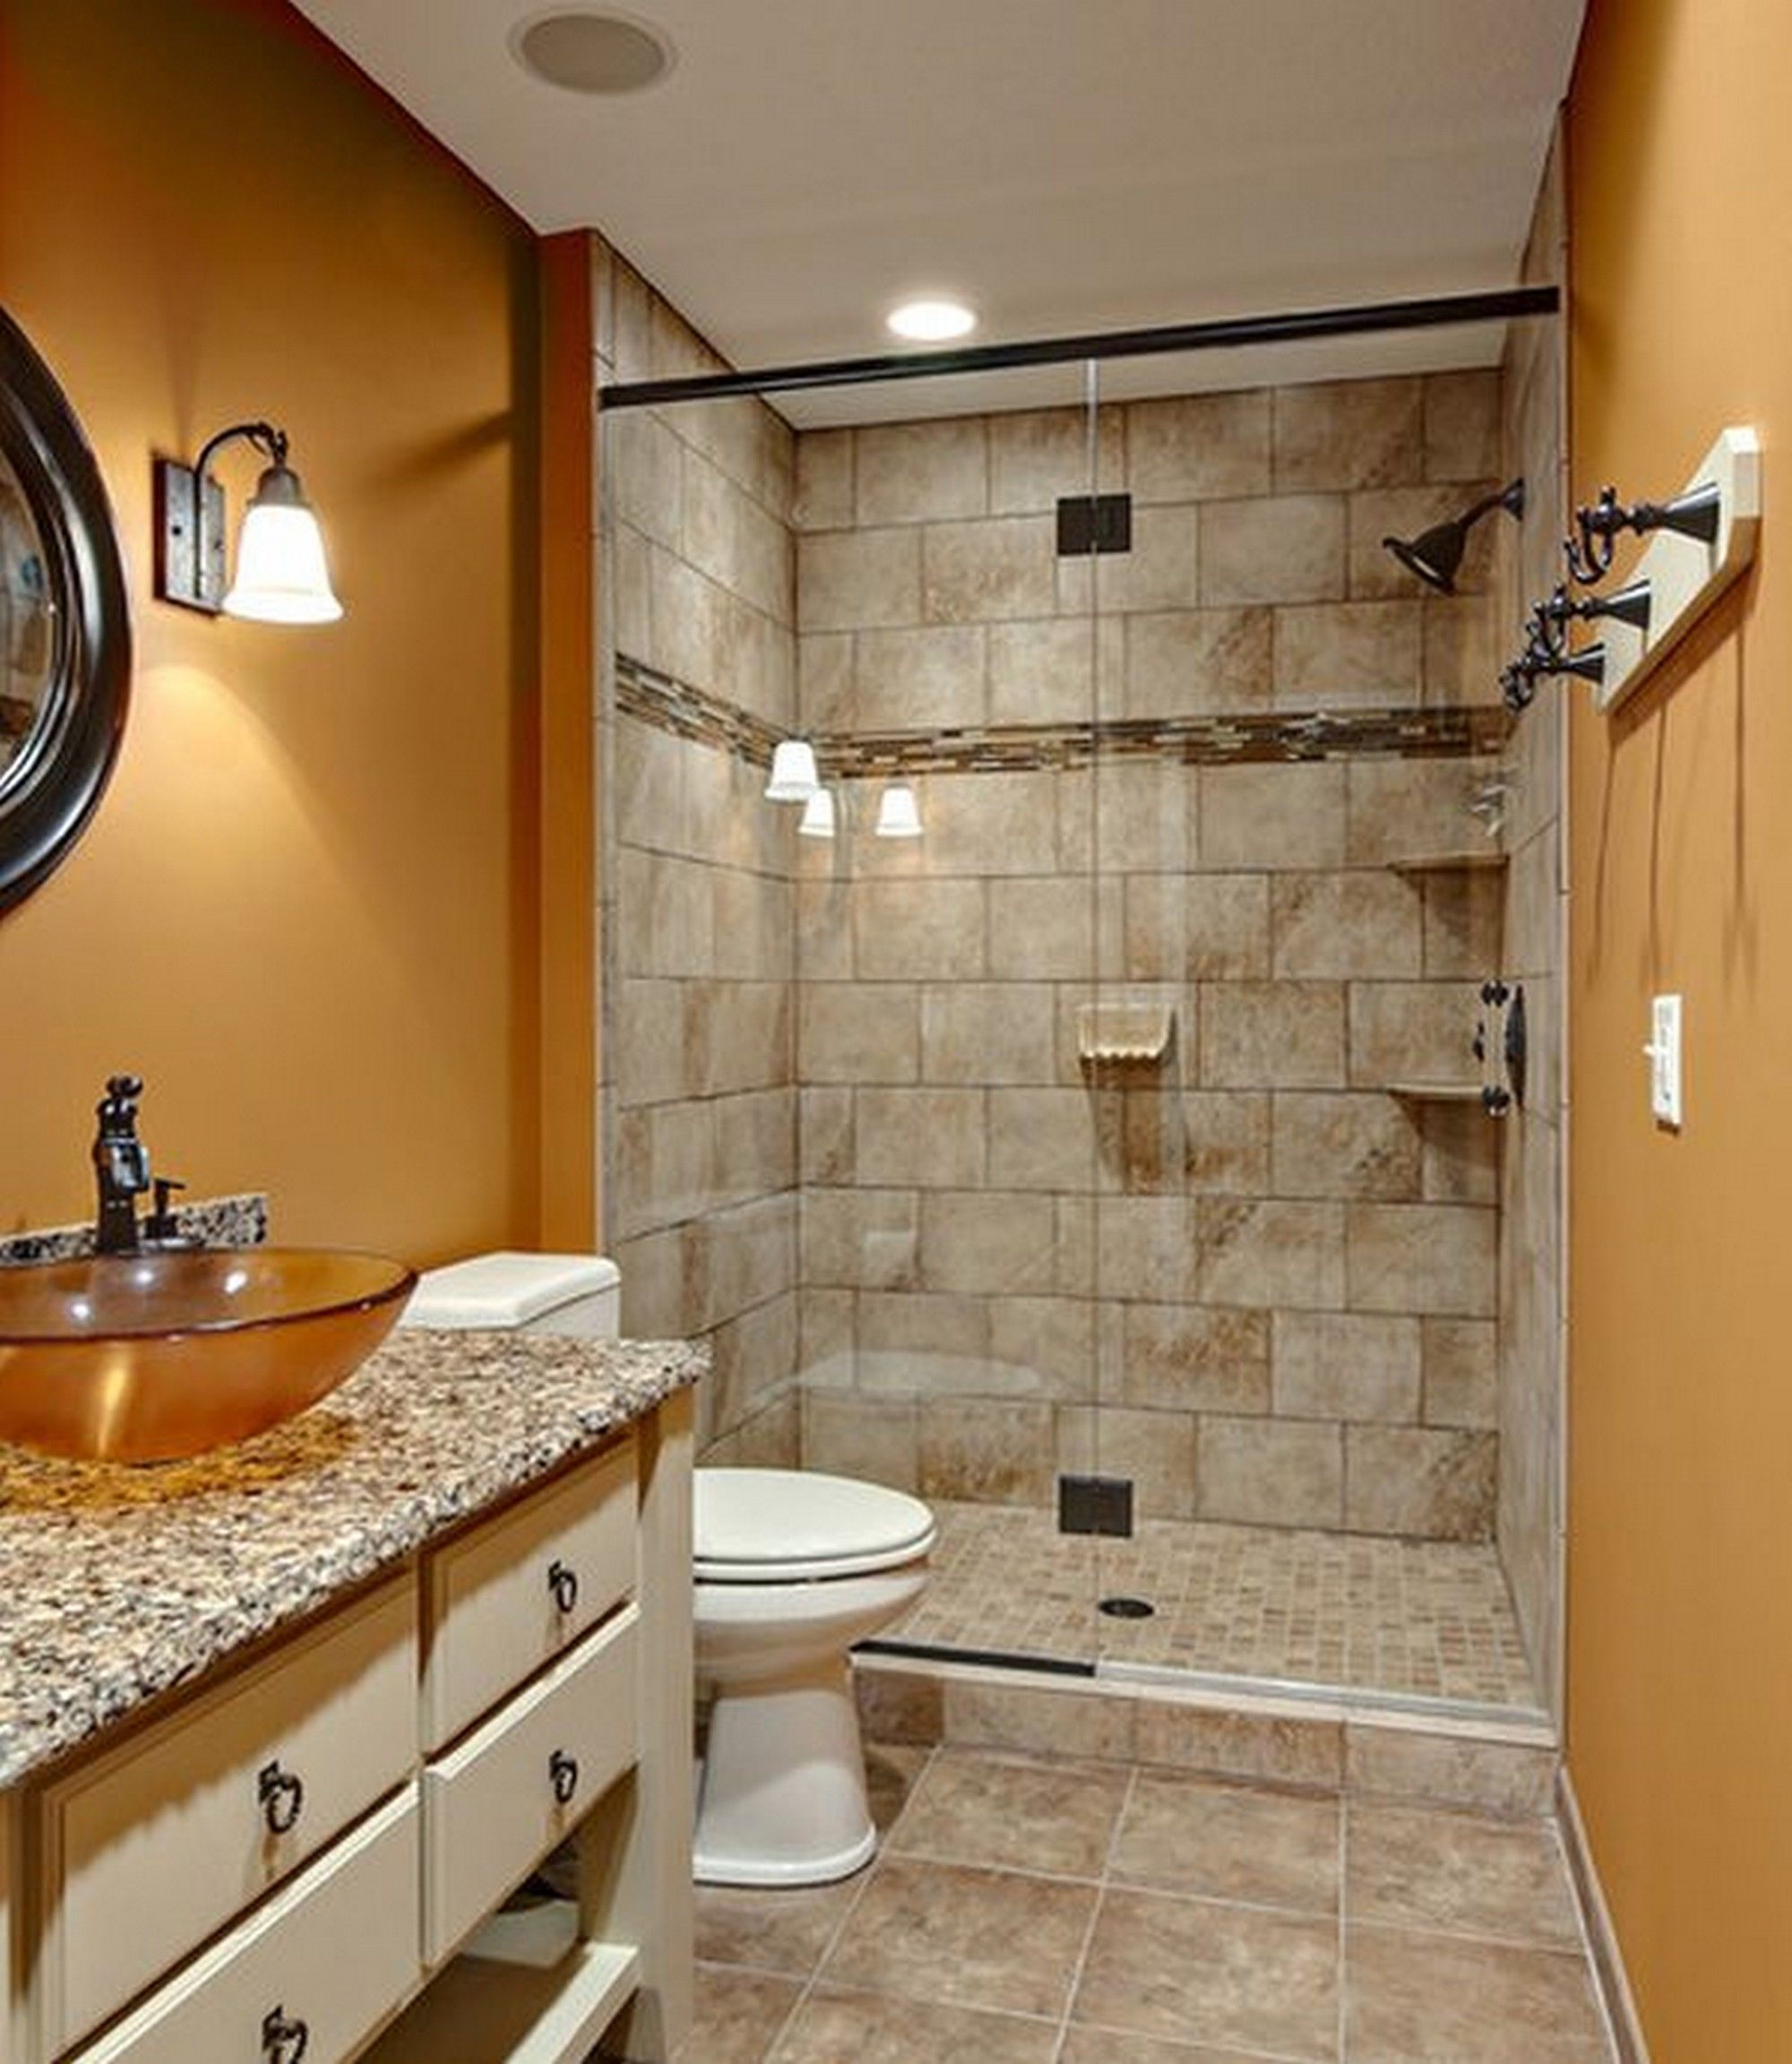 Modern Bathroom Design Ideas with Walk In Shower | Bathroom designs ...